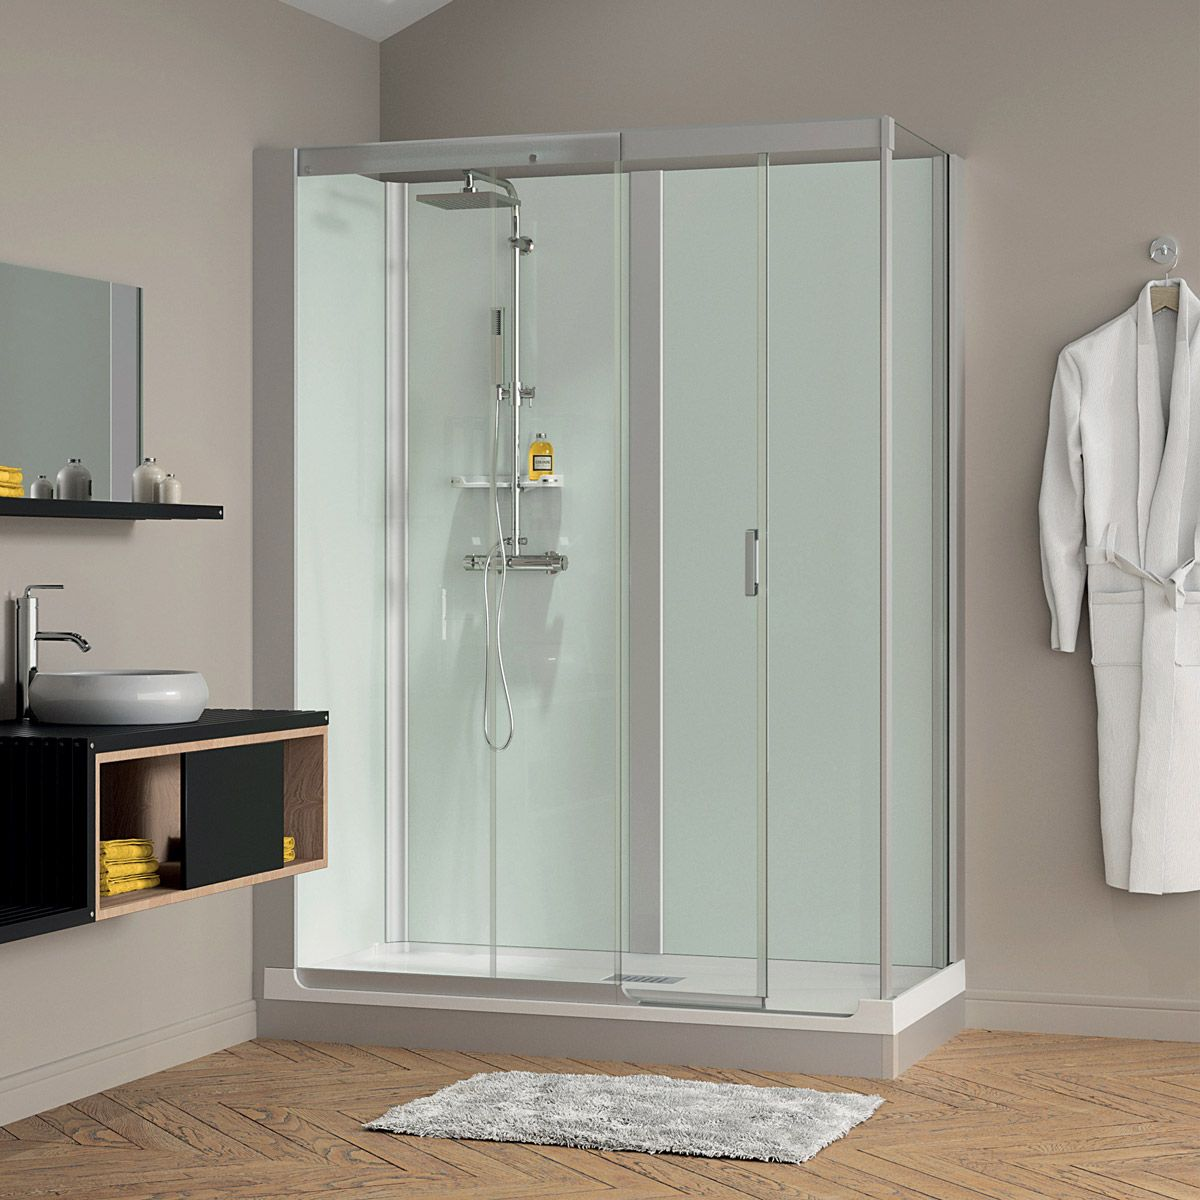 How To Retile A Shower Enclosure